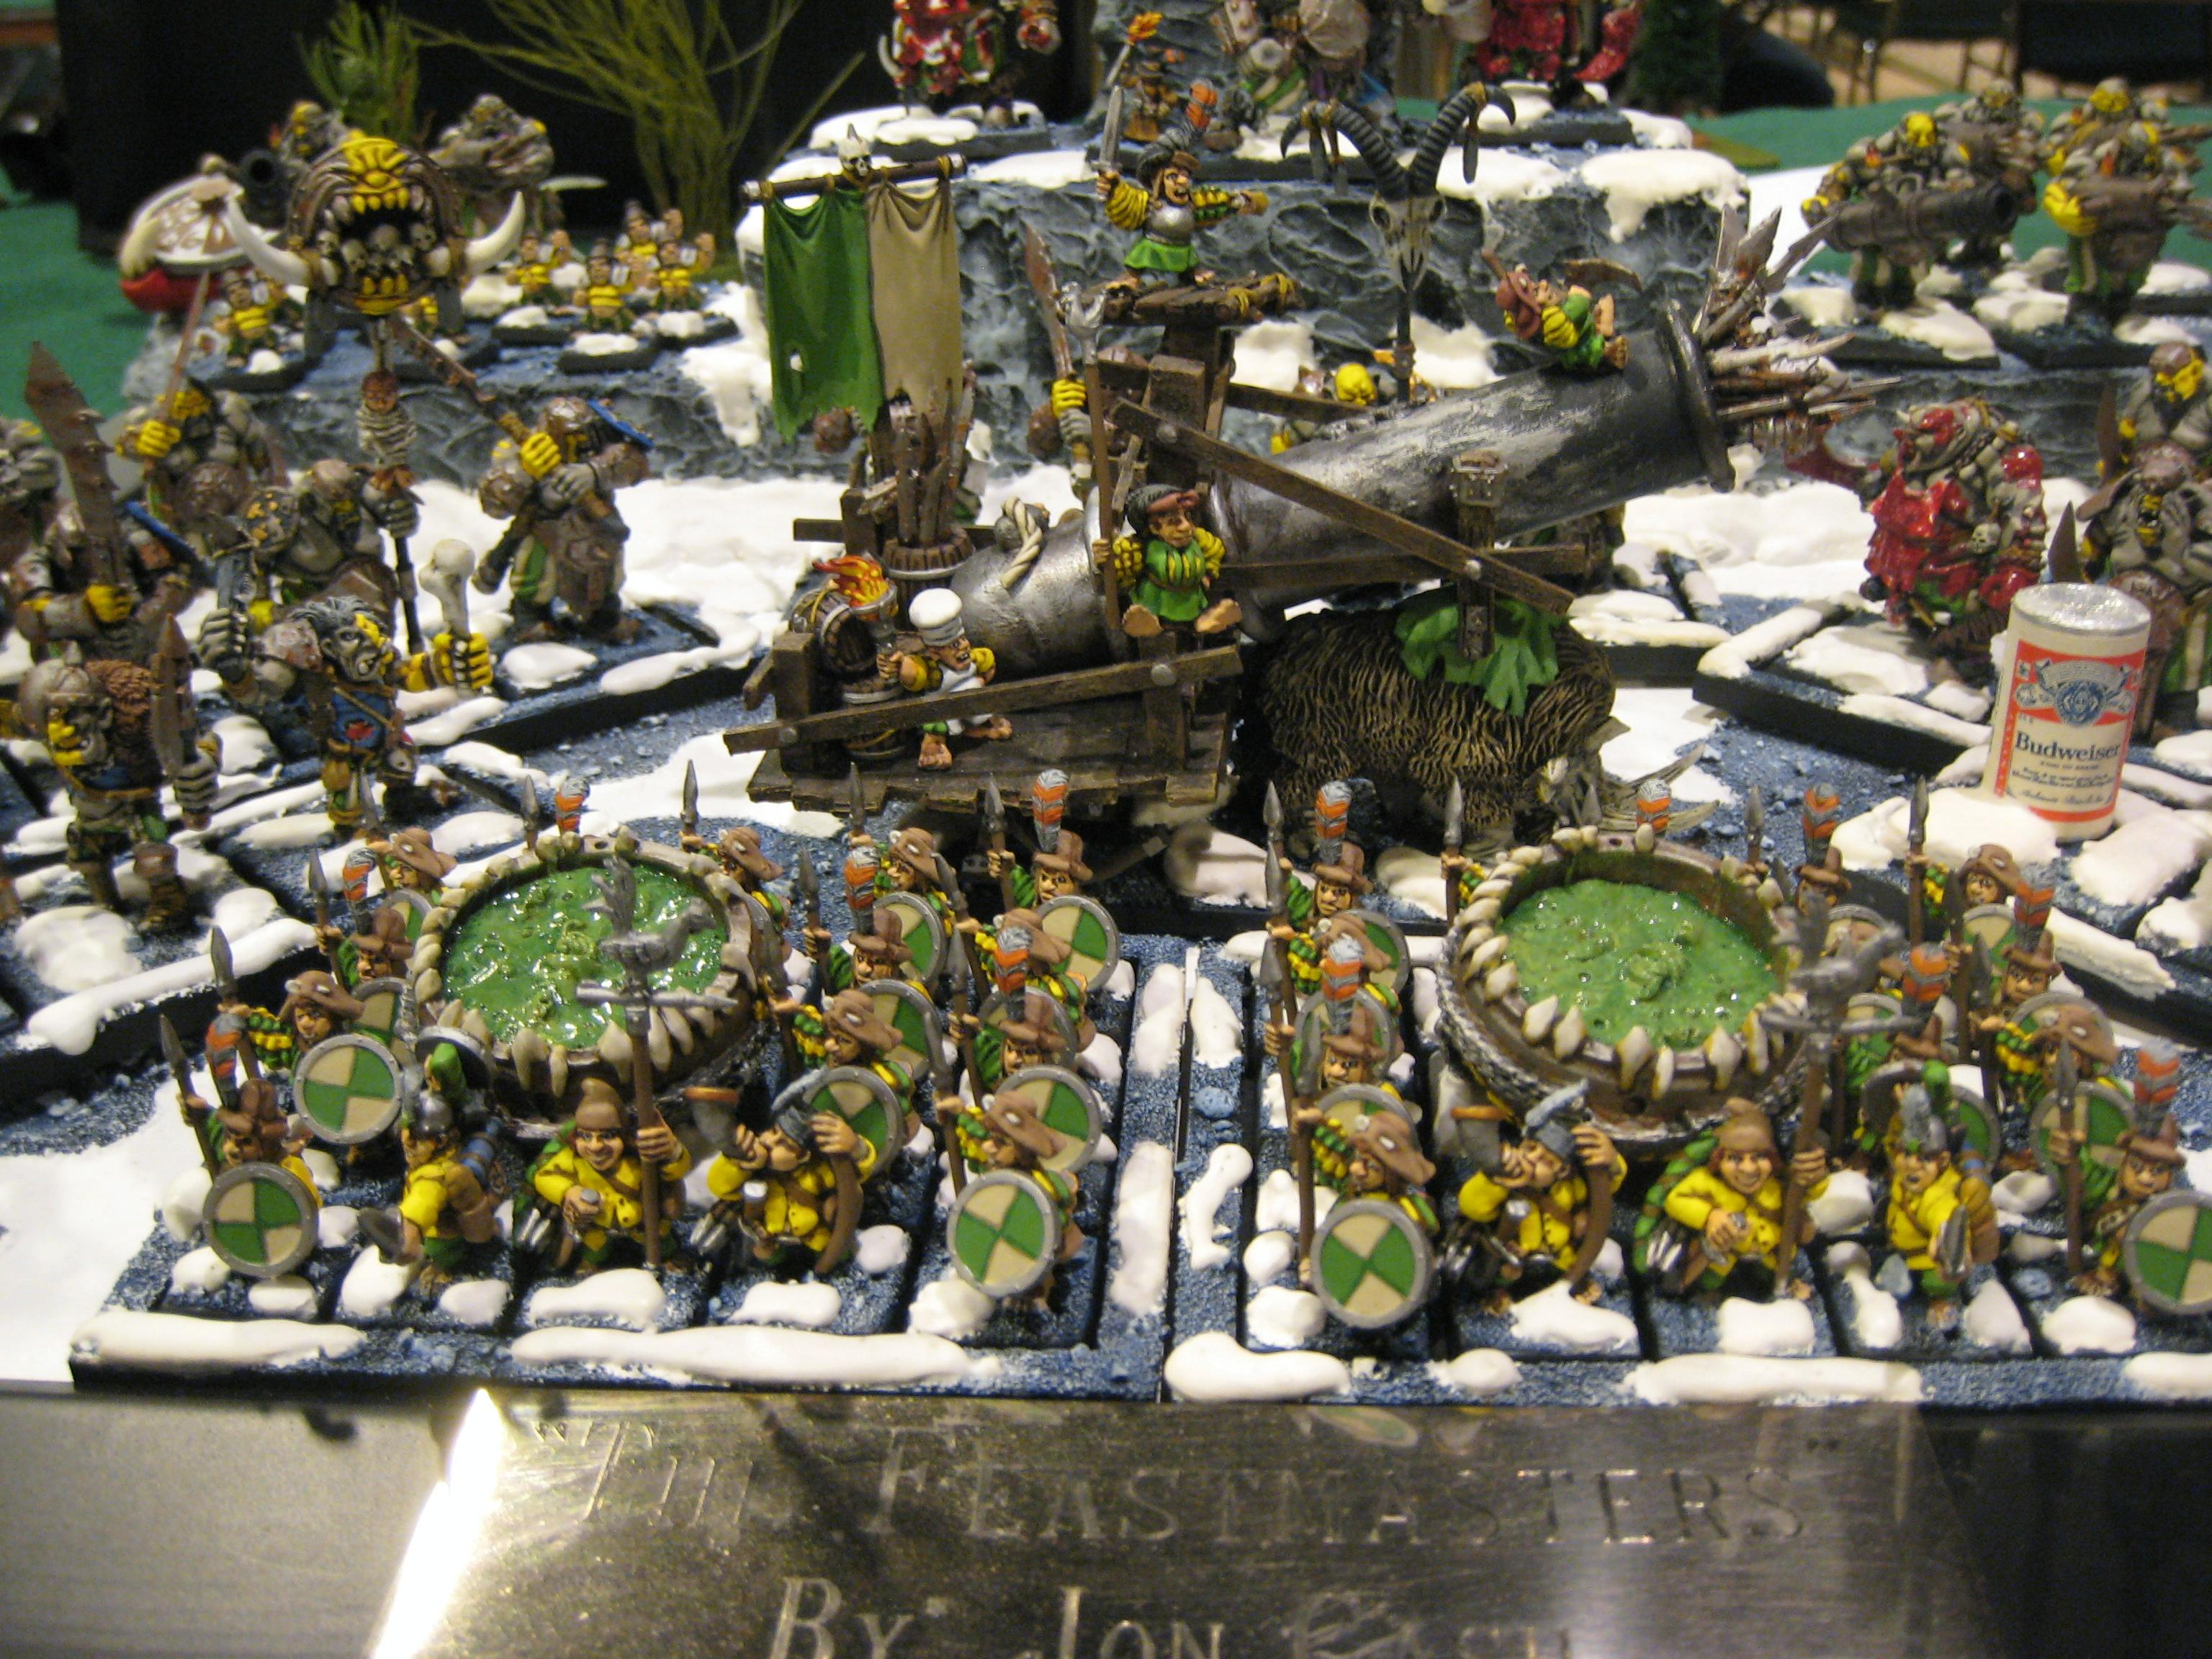 Best Appearance, Conversion, Grand Tournament, Halflings, Humor, Ogre Kingdoms, Warhammer Fantasy